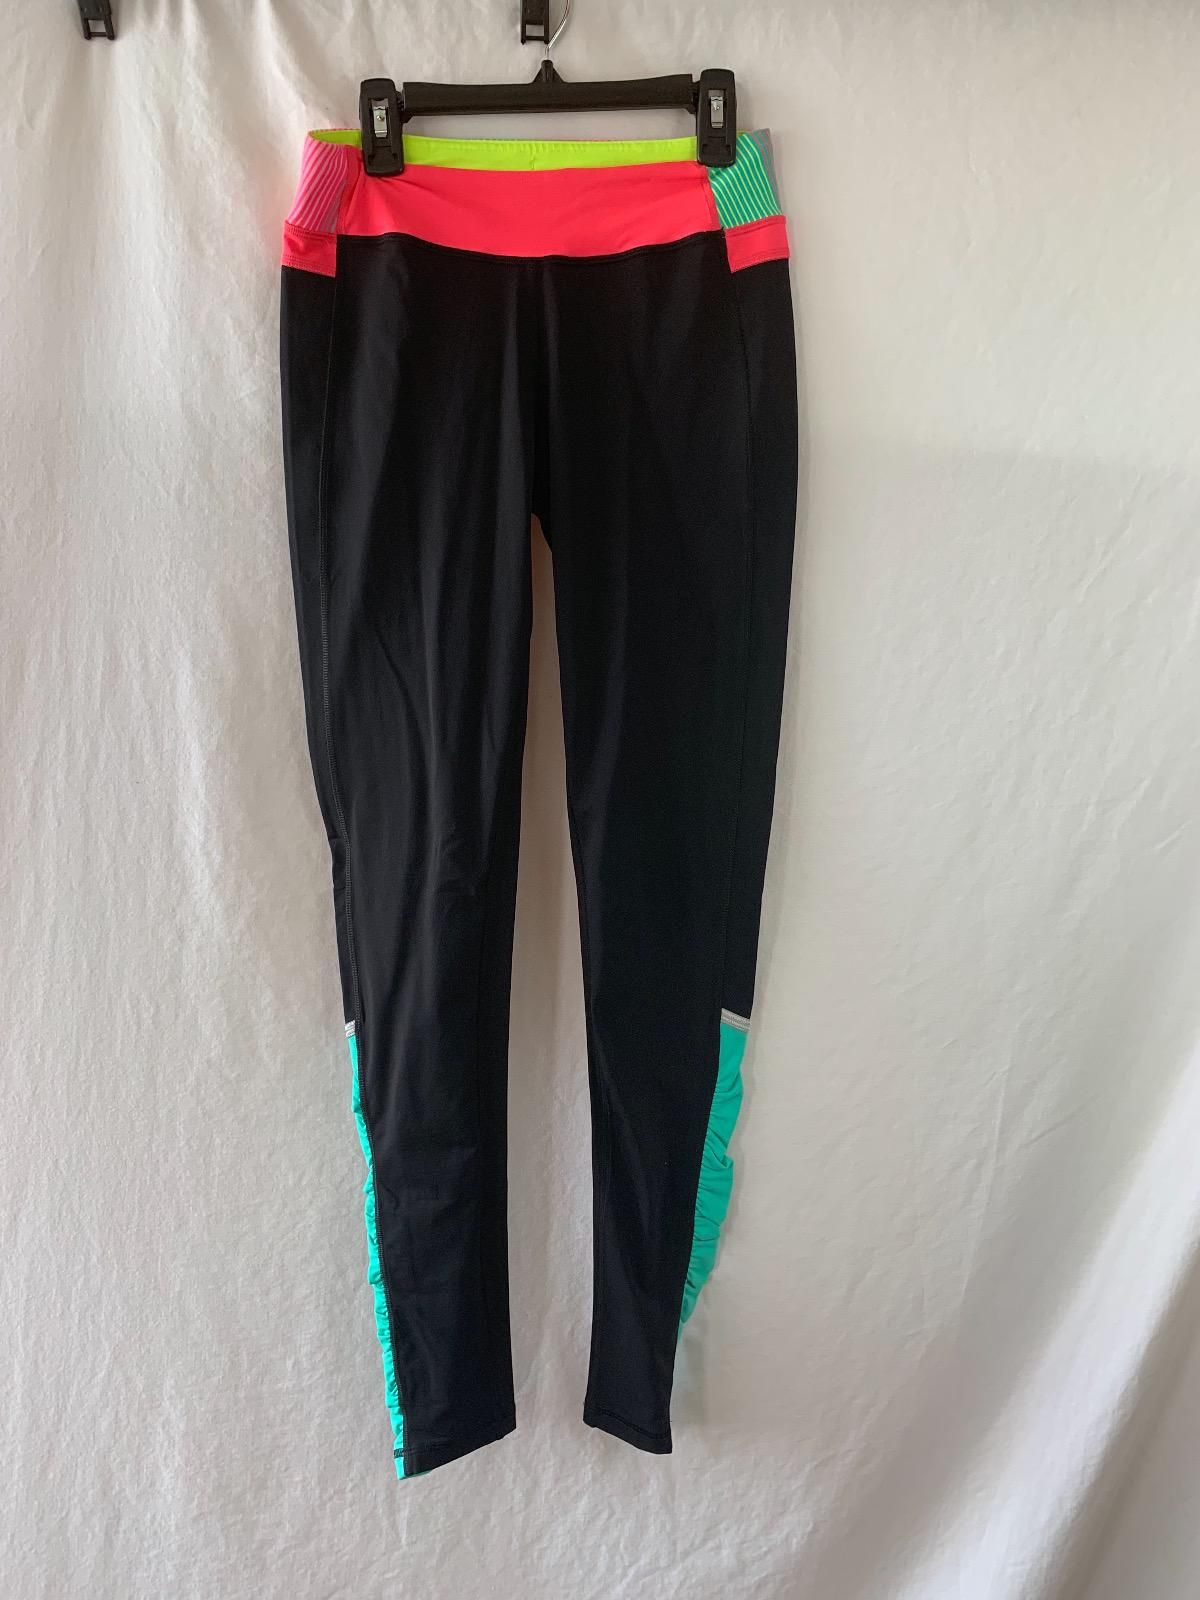 3af0ce05baeea5 Ivivva Legging w/Bright Colors -Girls Size 14 only $34. Girls size  14/16,XL,14.